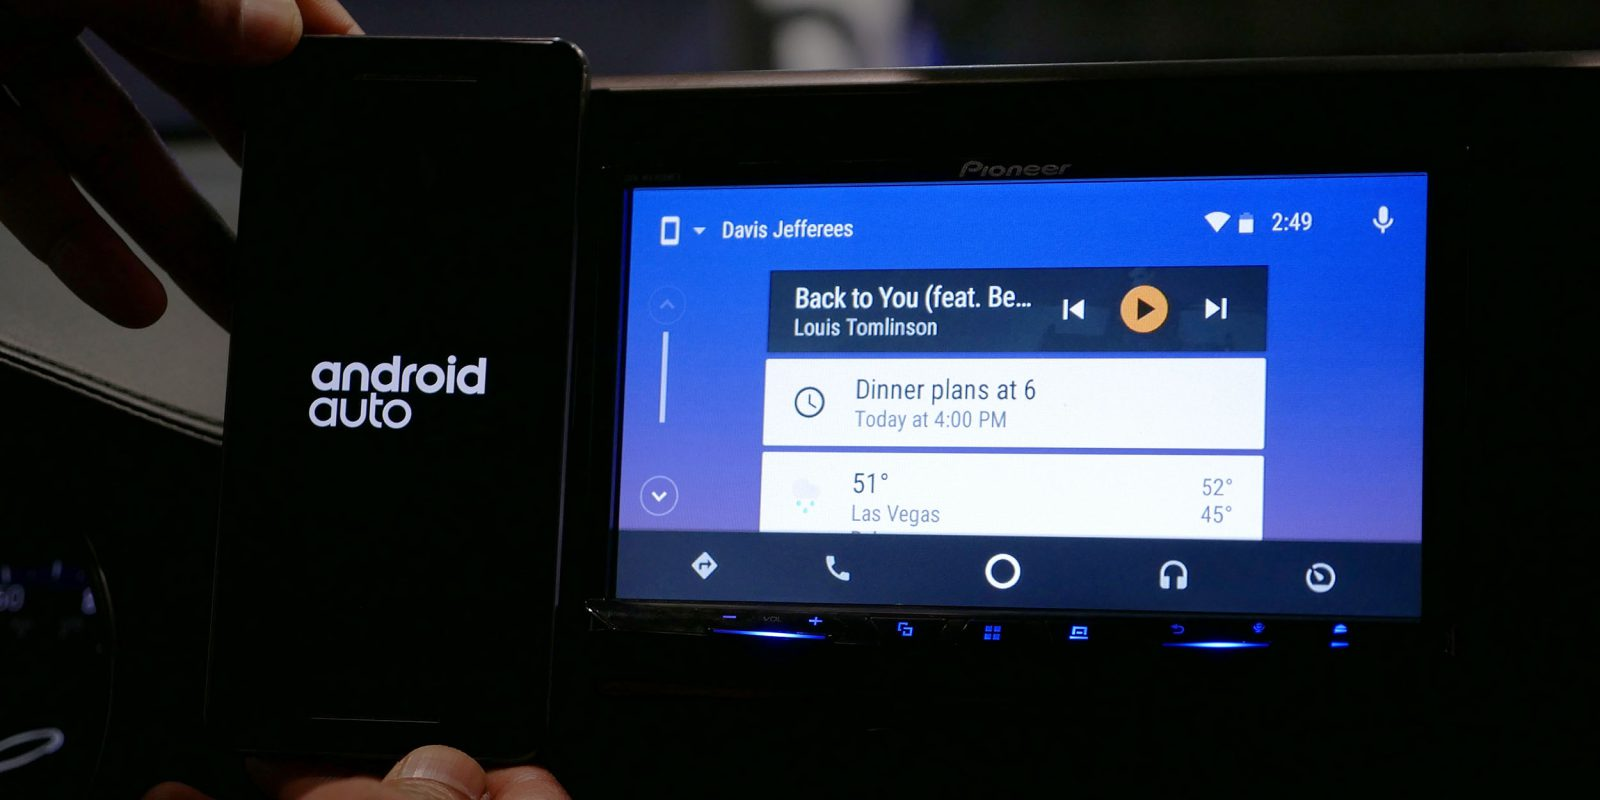 Pixel and Nexus owners can now use Android Auto wirelessly